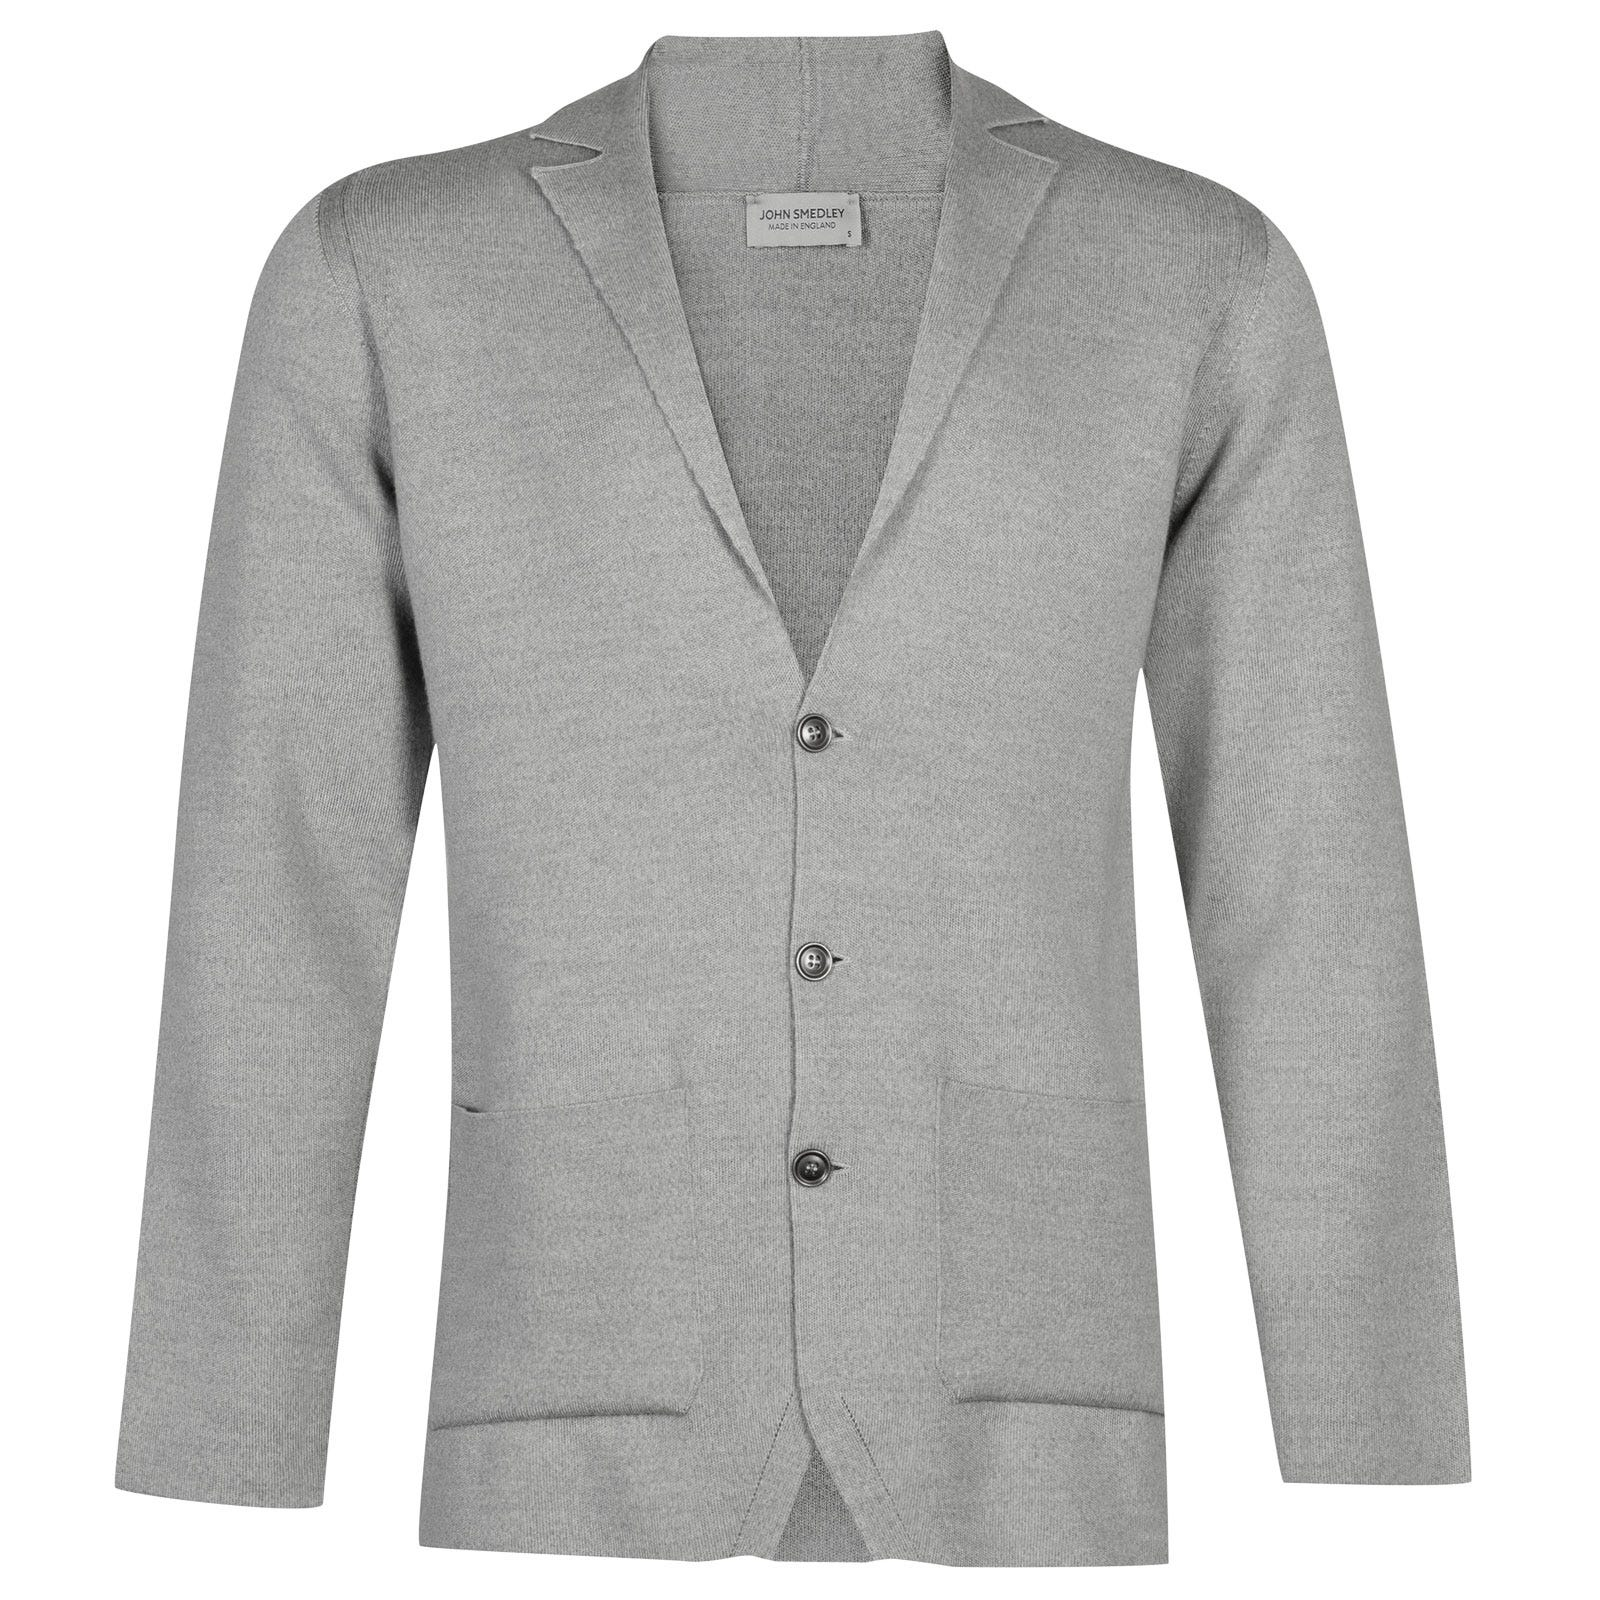 John Smedley Oxland Merino Wool Jacket in Bardot Grey-XL